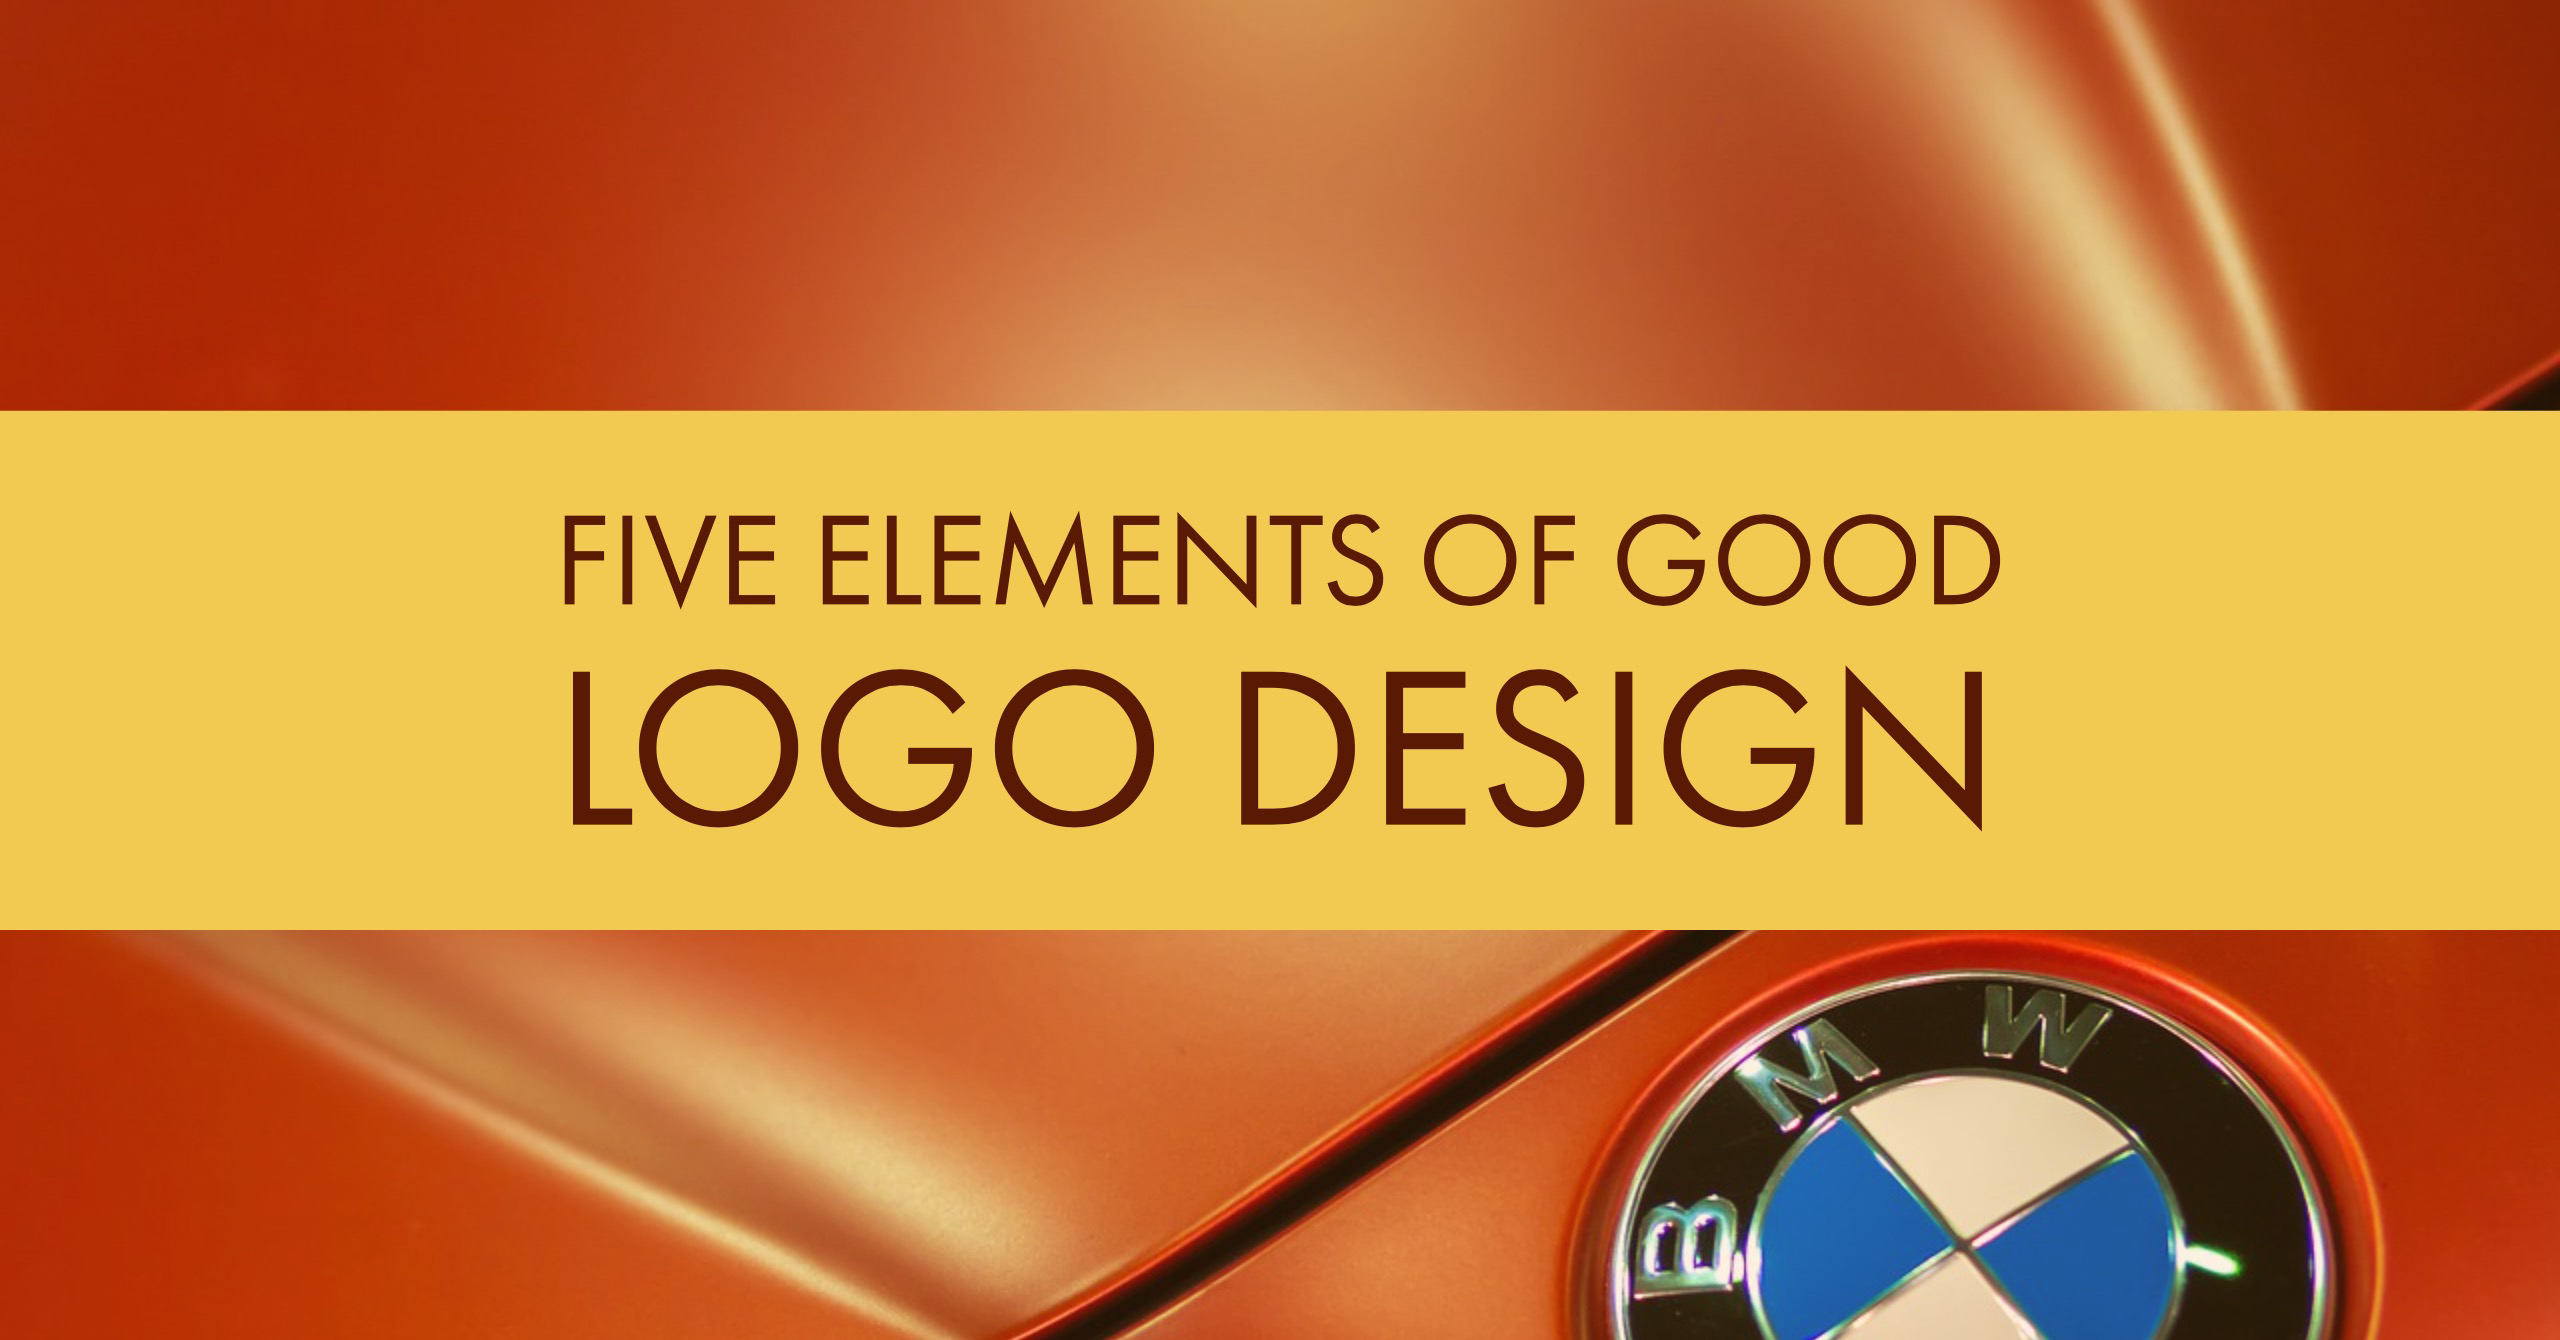 effective logo design Good and effective logo design doesn't just happen it takes strategy and planning learn the 5 principle elements that make for a logo design.